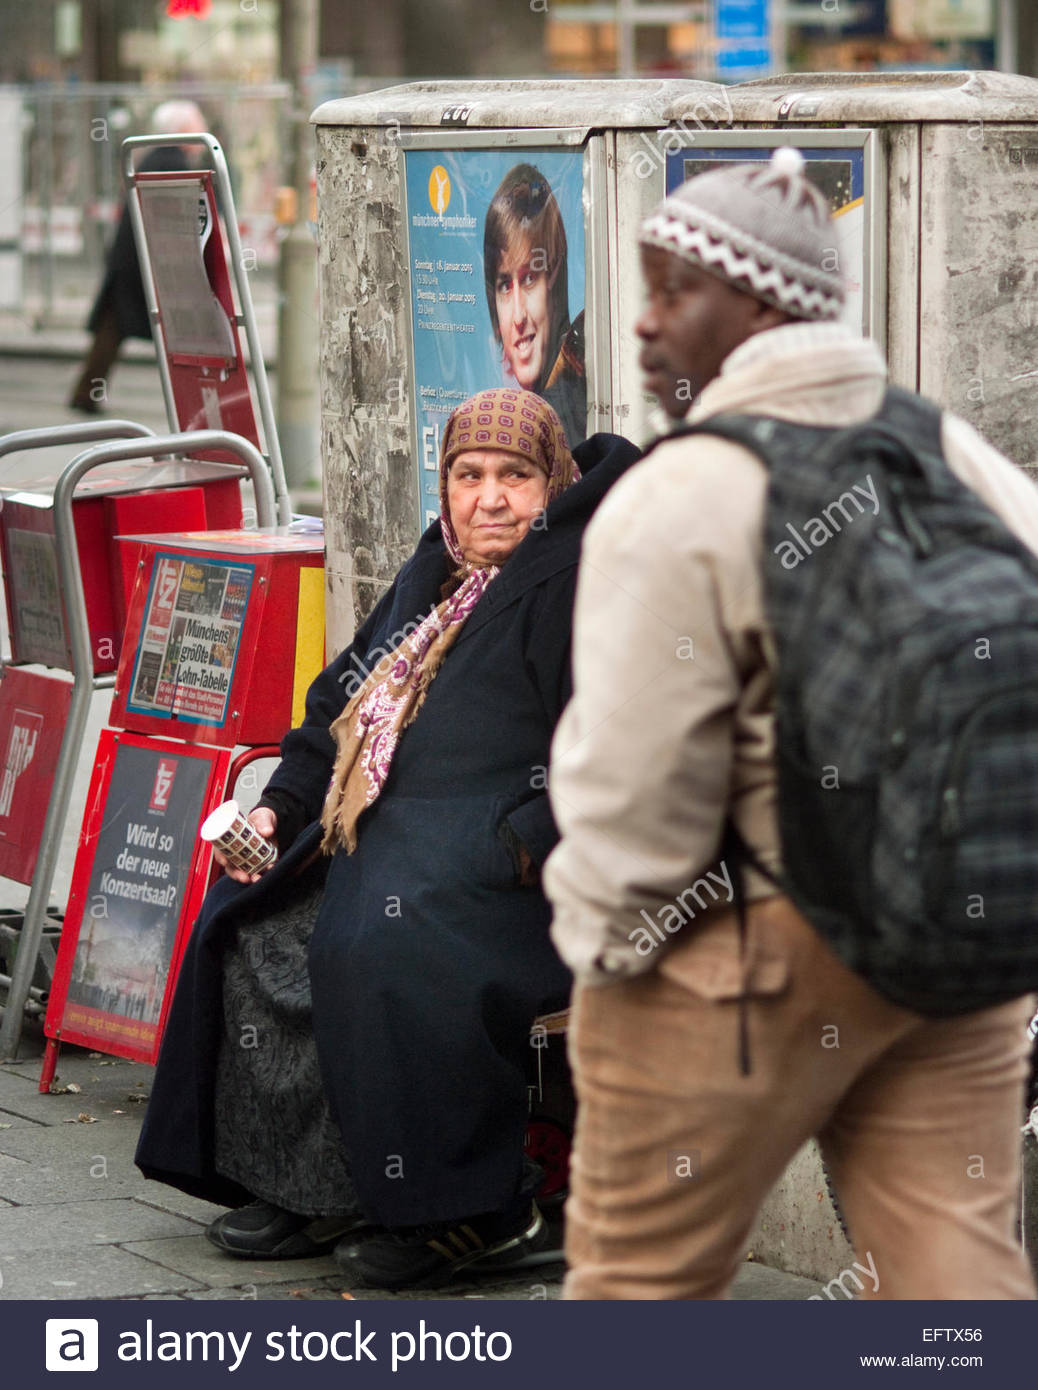 Man Walking Past Elderly Muslim Woman Sitting In Street Holding Empty Coffee Cup Munich Bavaria Germany - Stock Image